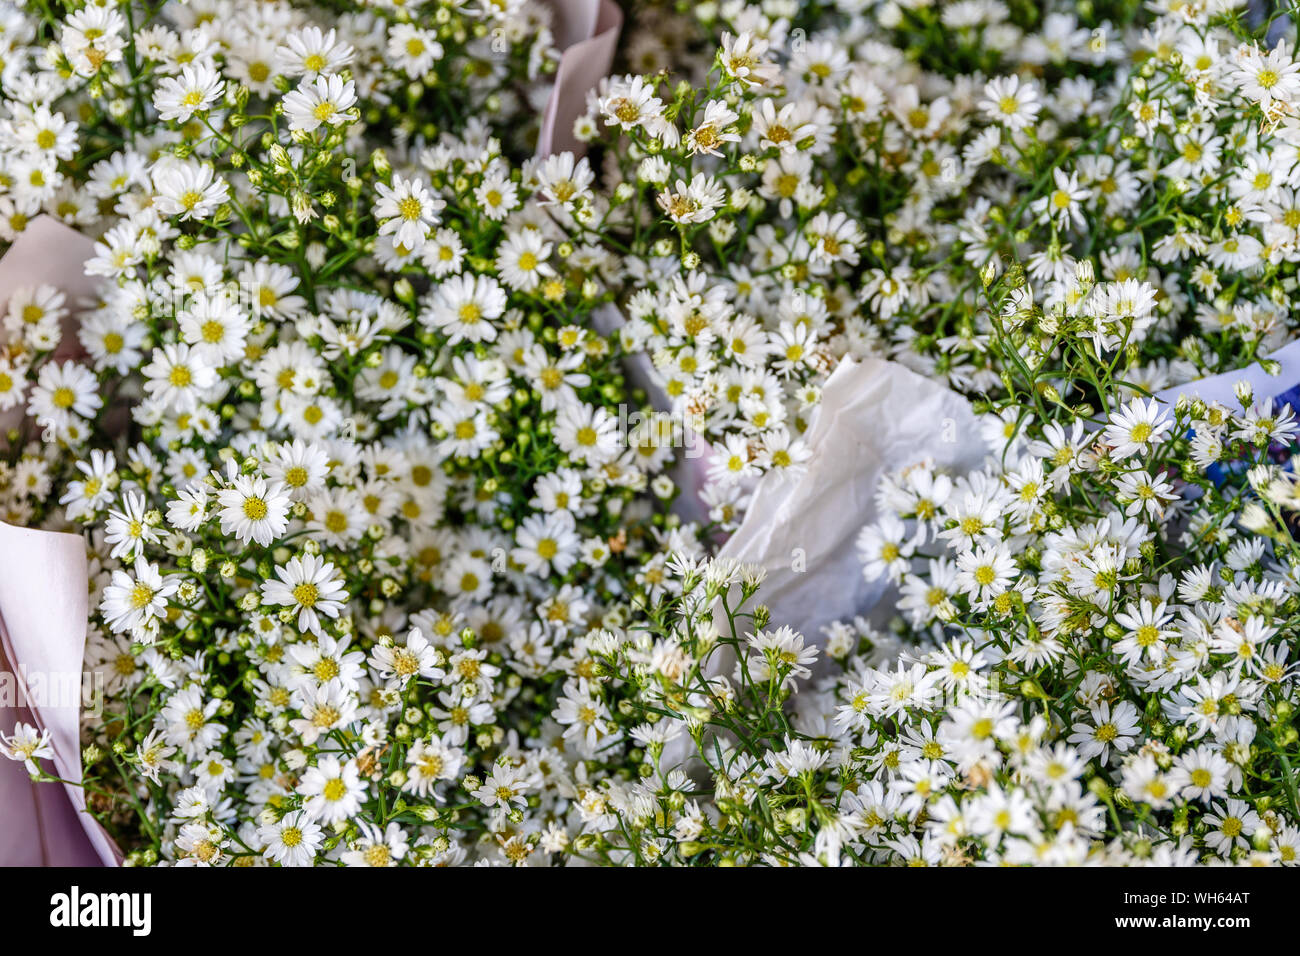 Bouquets of white aster flowers at Pak Khlong Talat, famous flower market in Bangkok, Thailand. Stock Photo